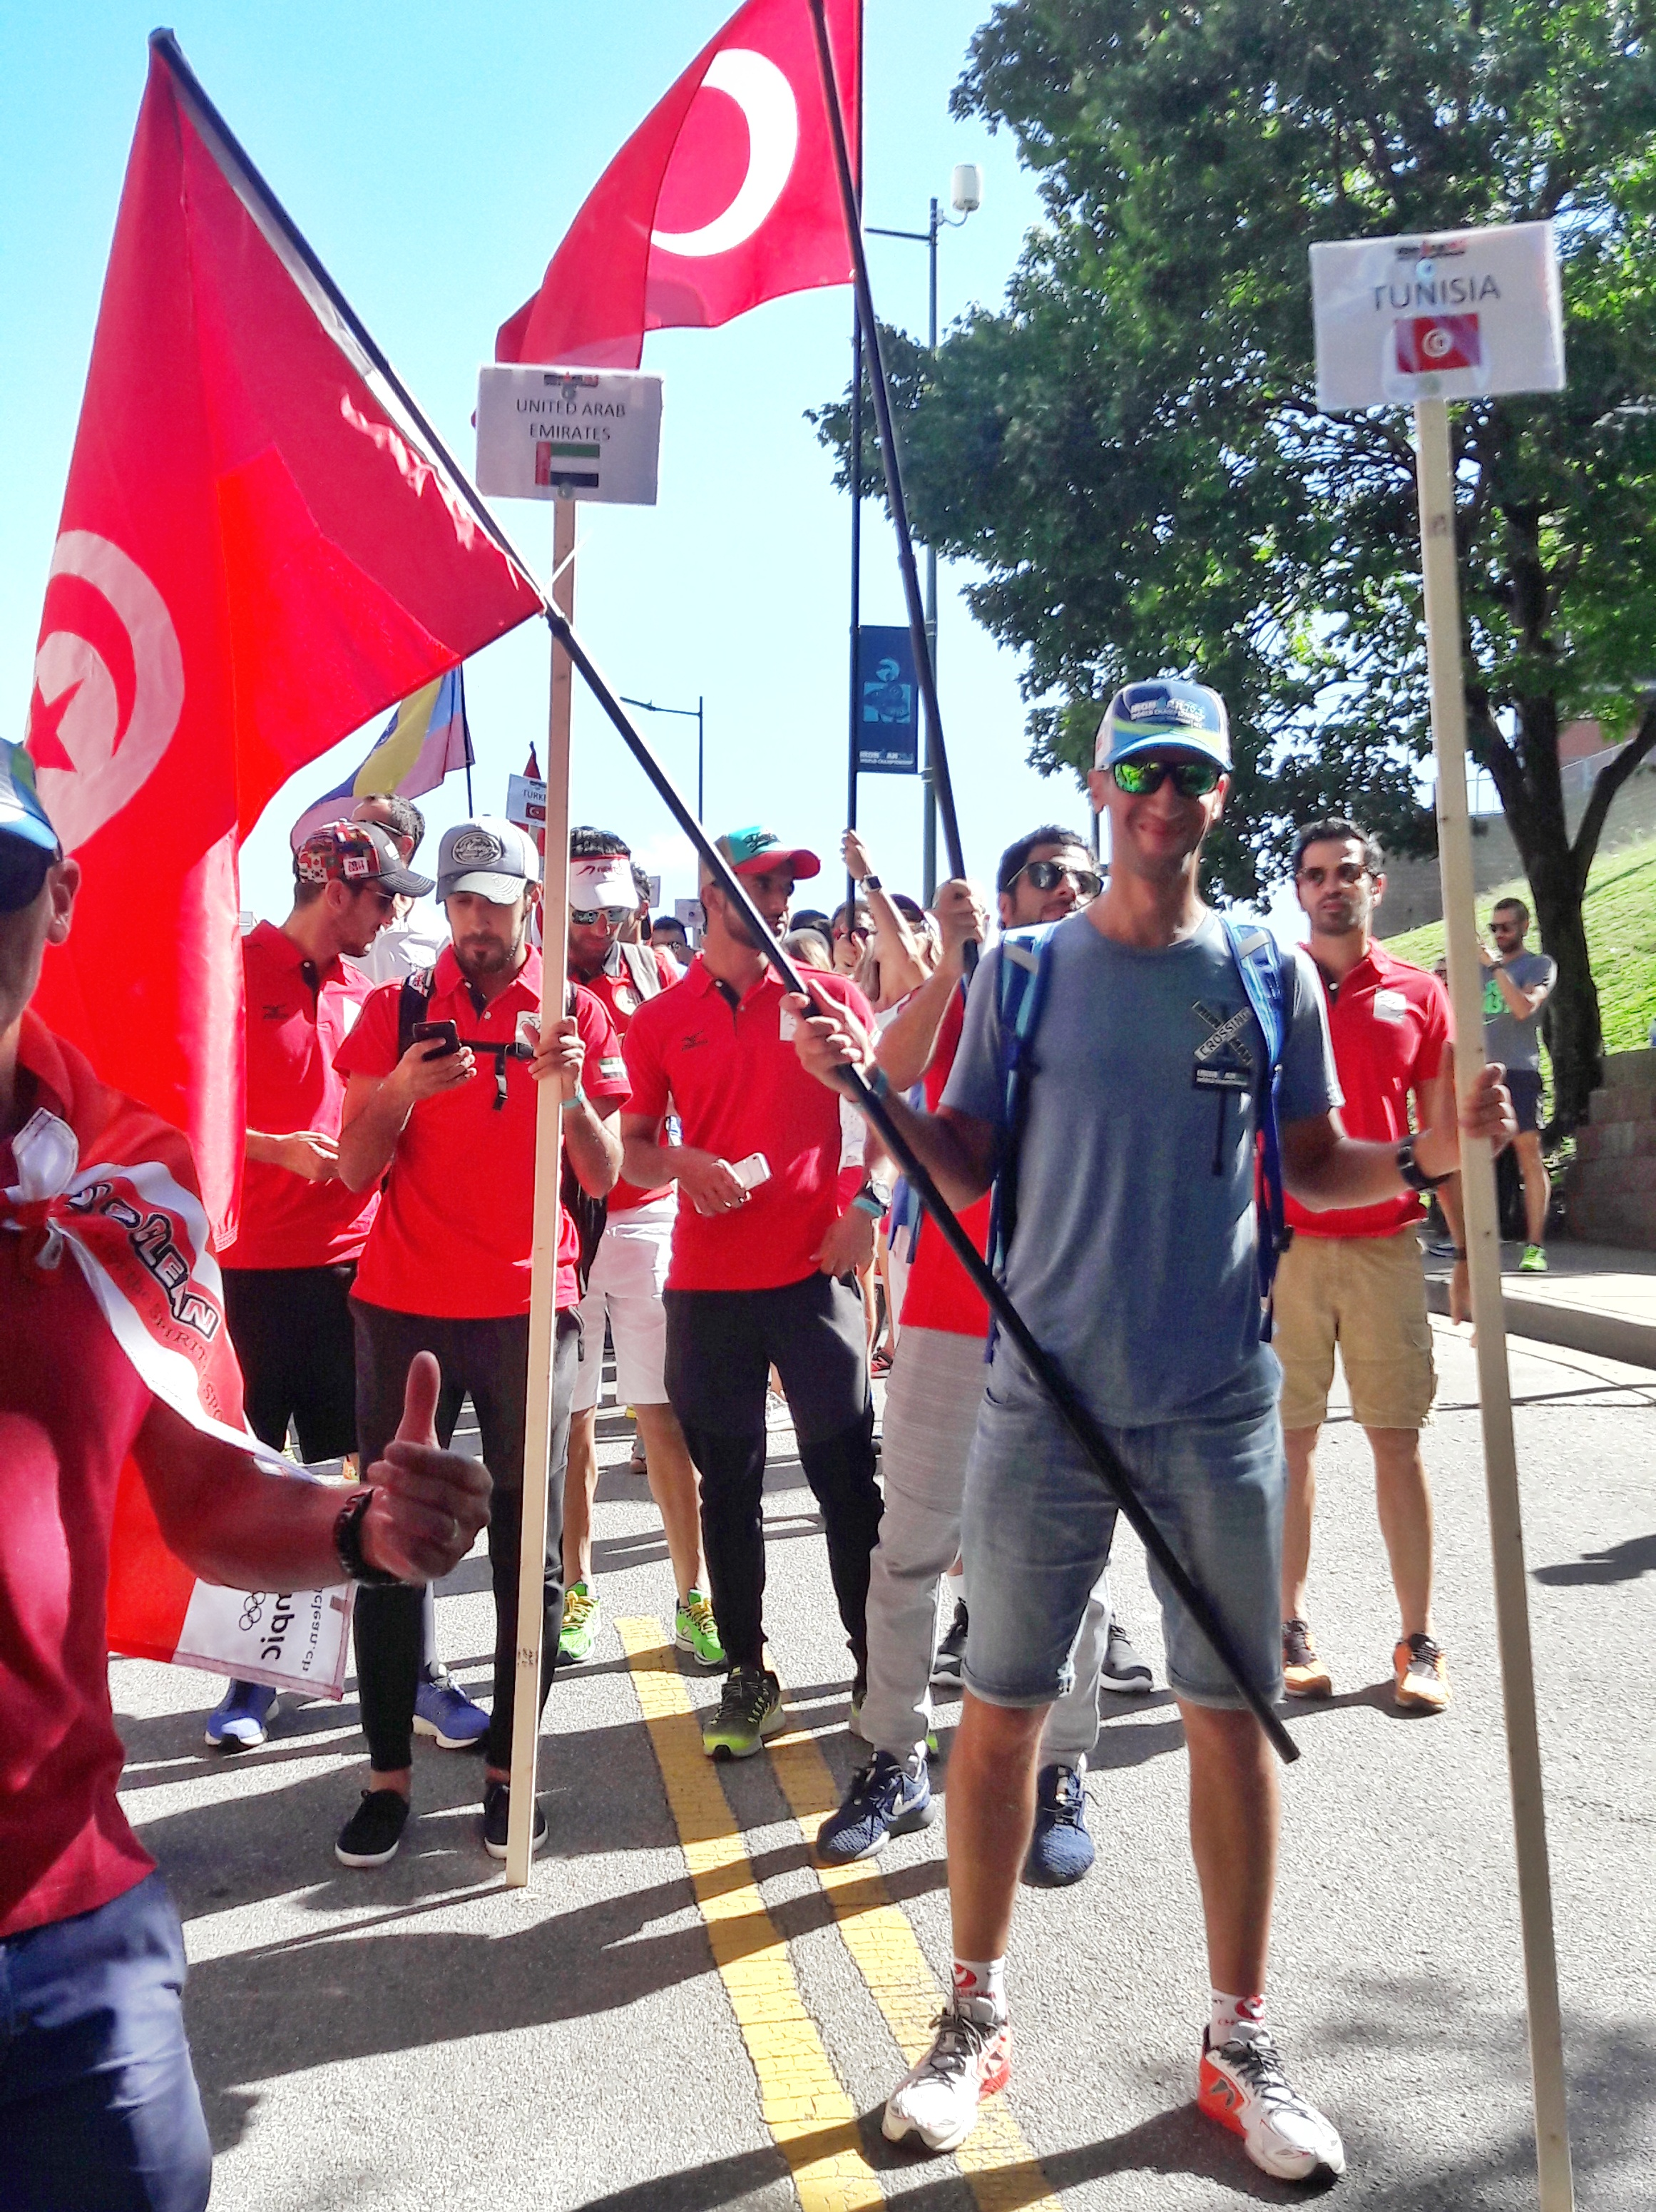 Proudly holding the Tunisian flag at the parade of nations.